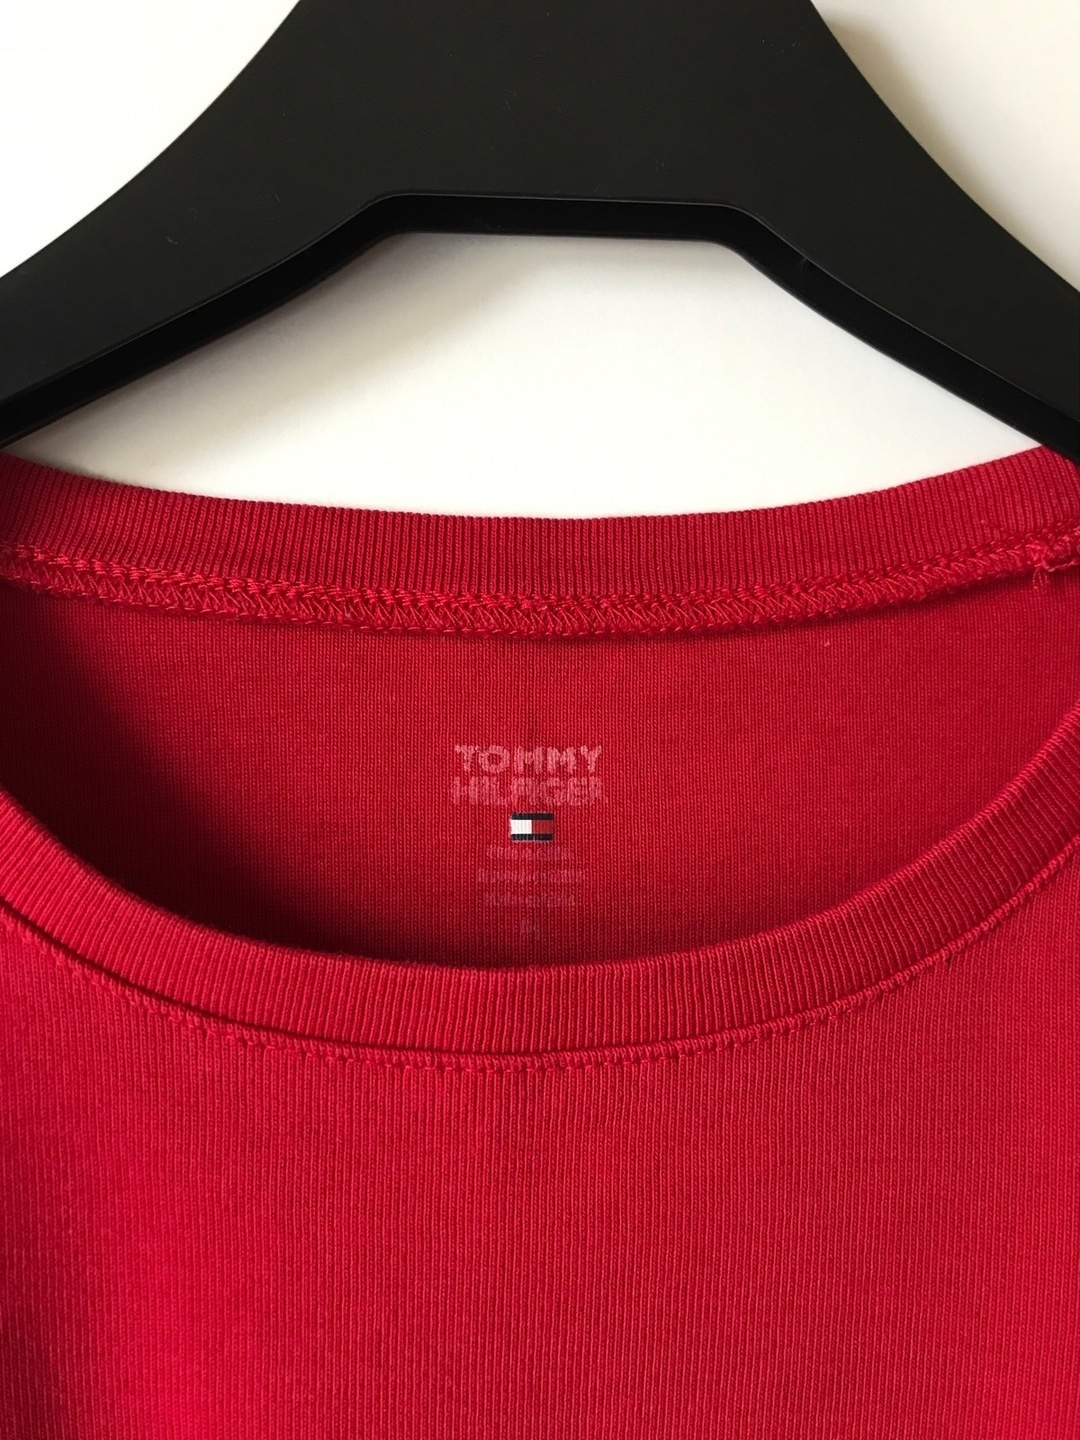 Women's tops & t-shirts - TOMMY HILFIGER photo 4